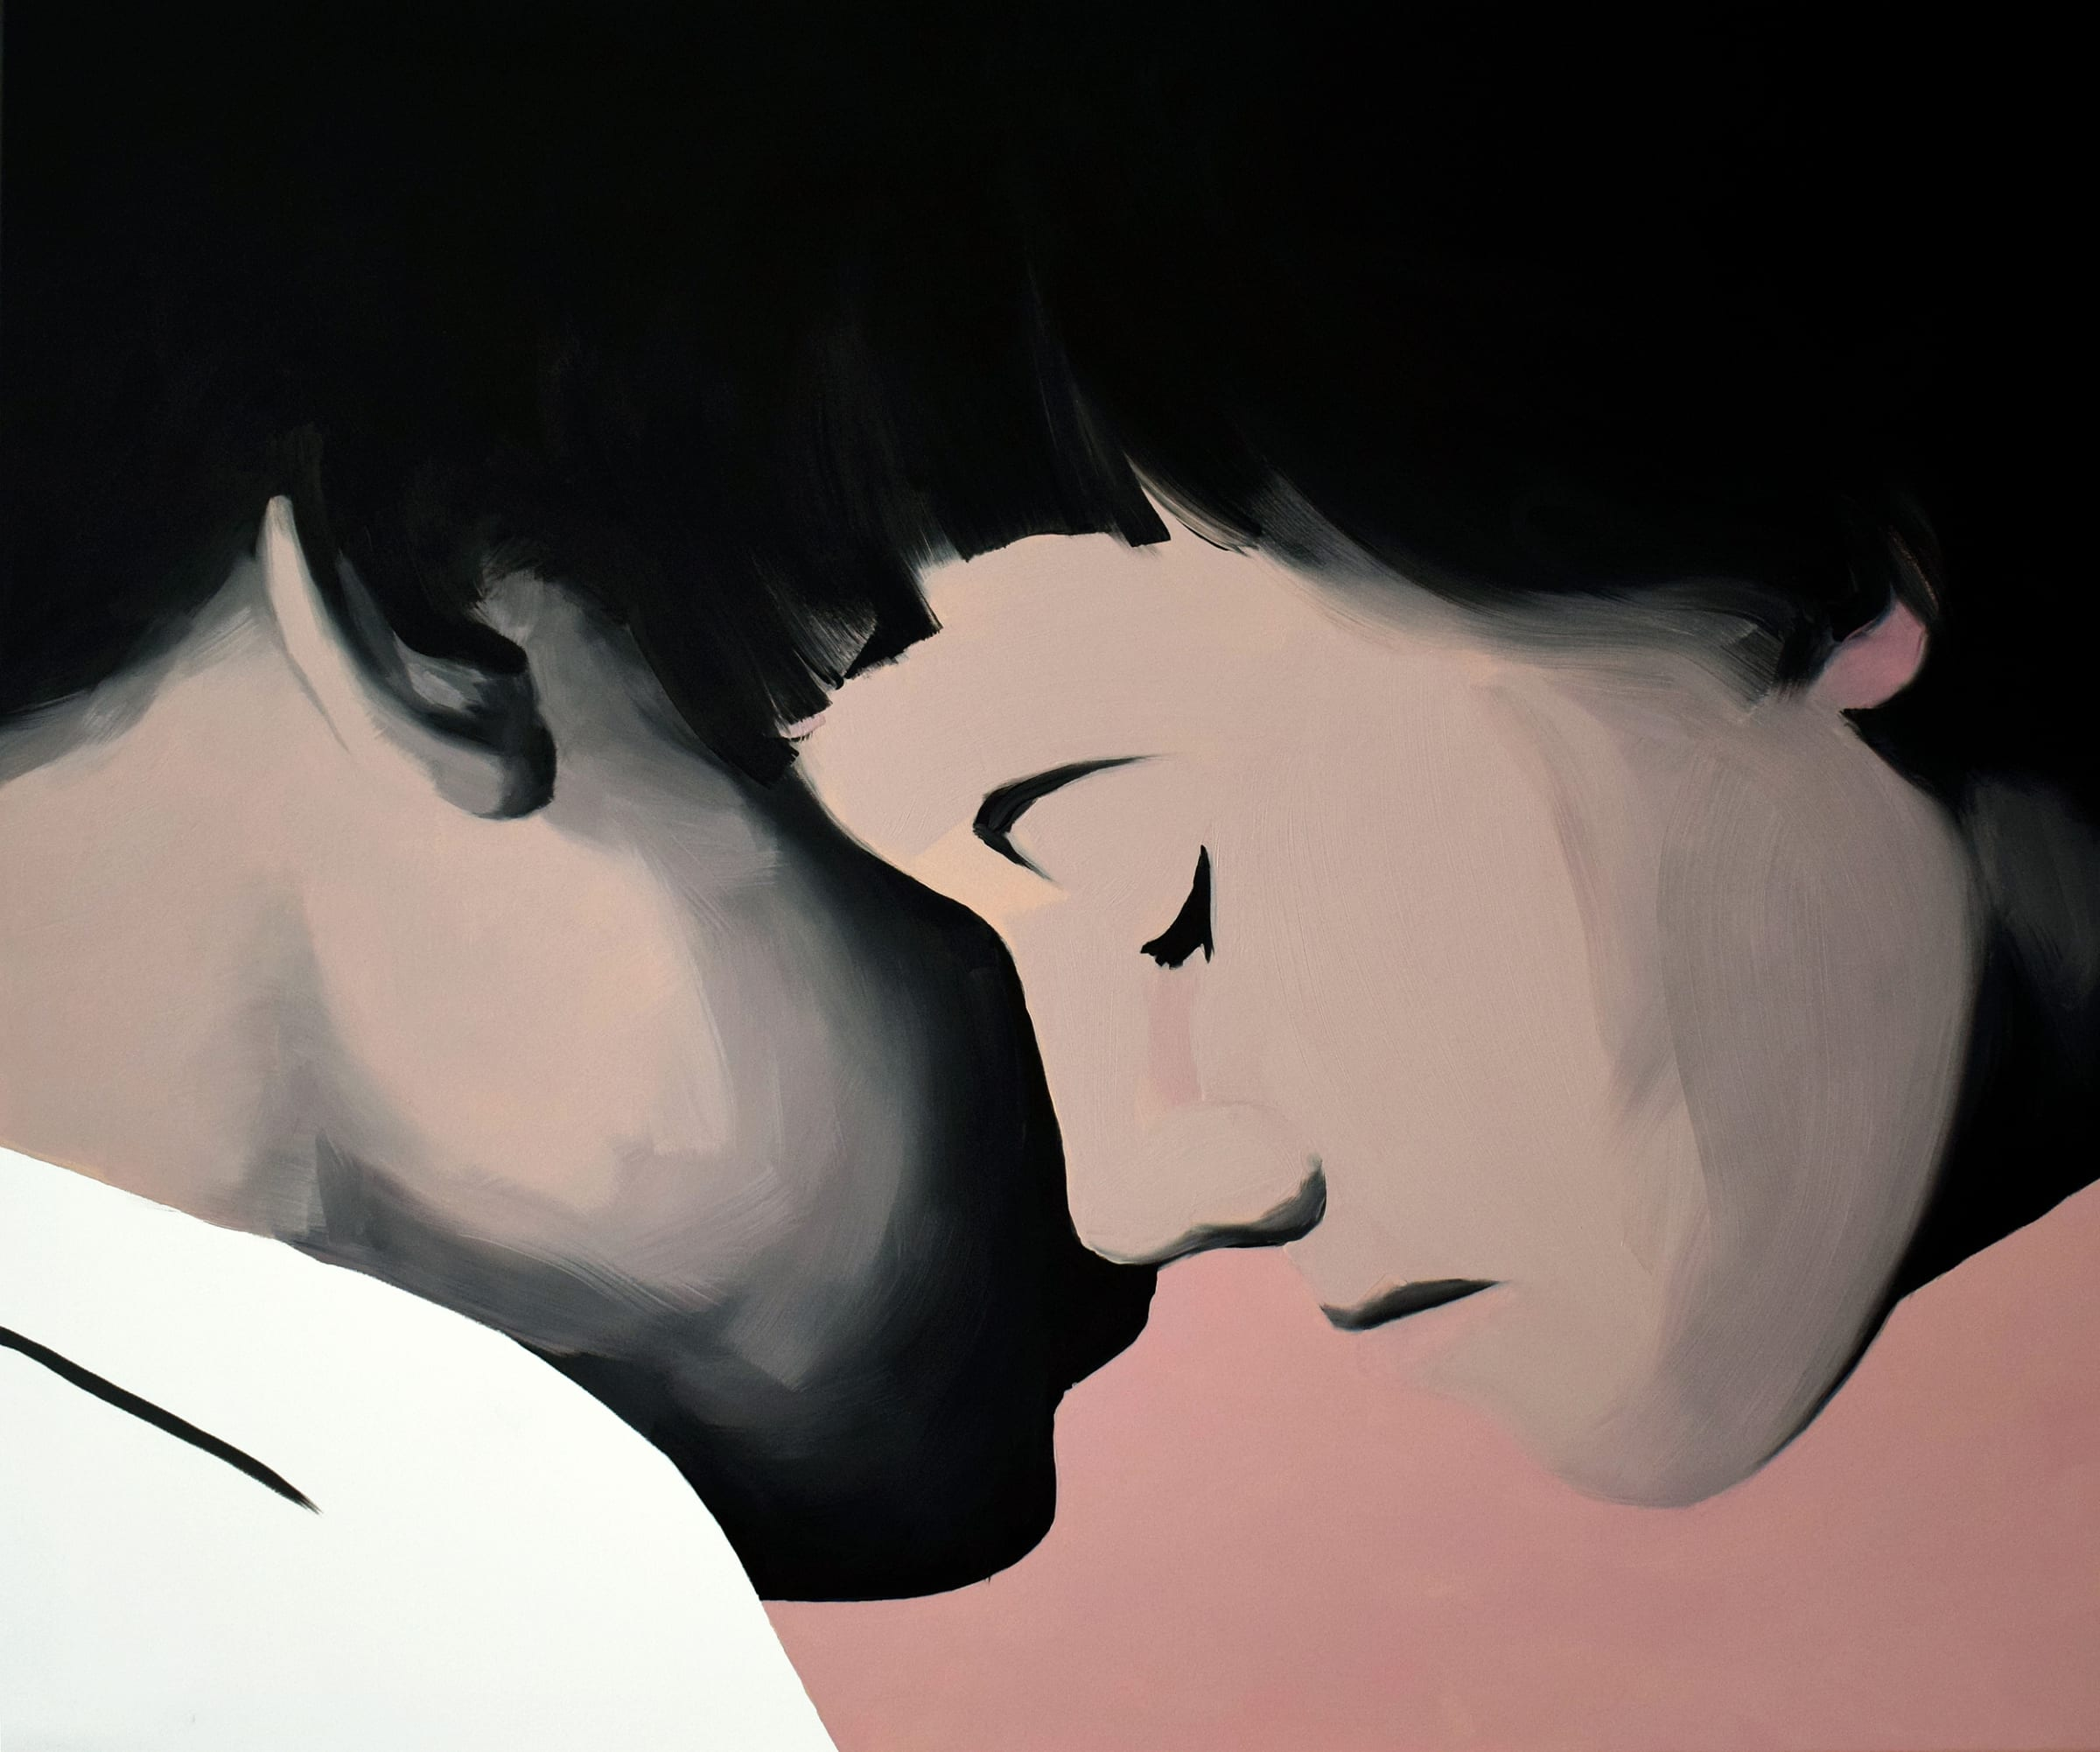 "<span class=""link fancybox-details-link""><a href=""/artists/54-jarek-puczel/works/573-jarek-puczel-connection/"">View Detail Page</a></span><div class=""artist""><strong>Jarek Puczel</strong></div> <div class=""title""><em>Connection </em></div> <div class=""medium"">Oil on Canvas </div> <div class=""dimensions"">39.4 x 47.2 inches </div>"